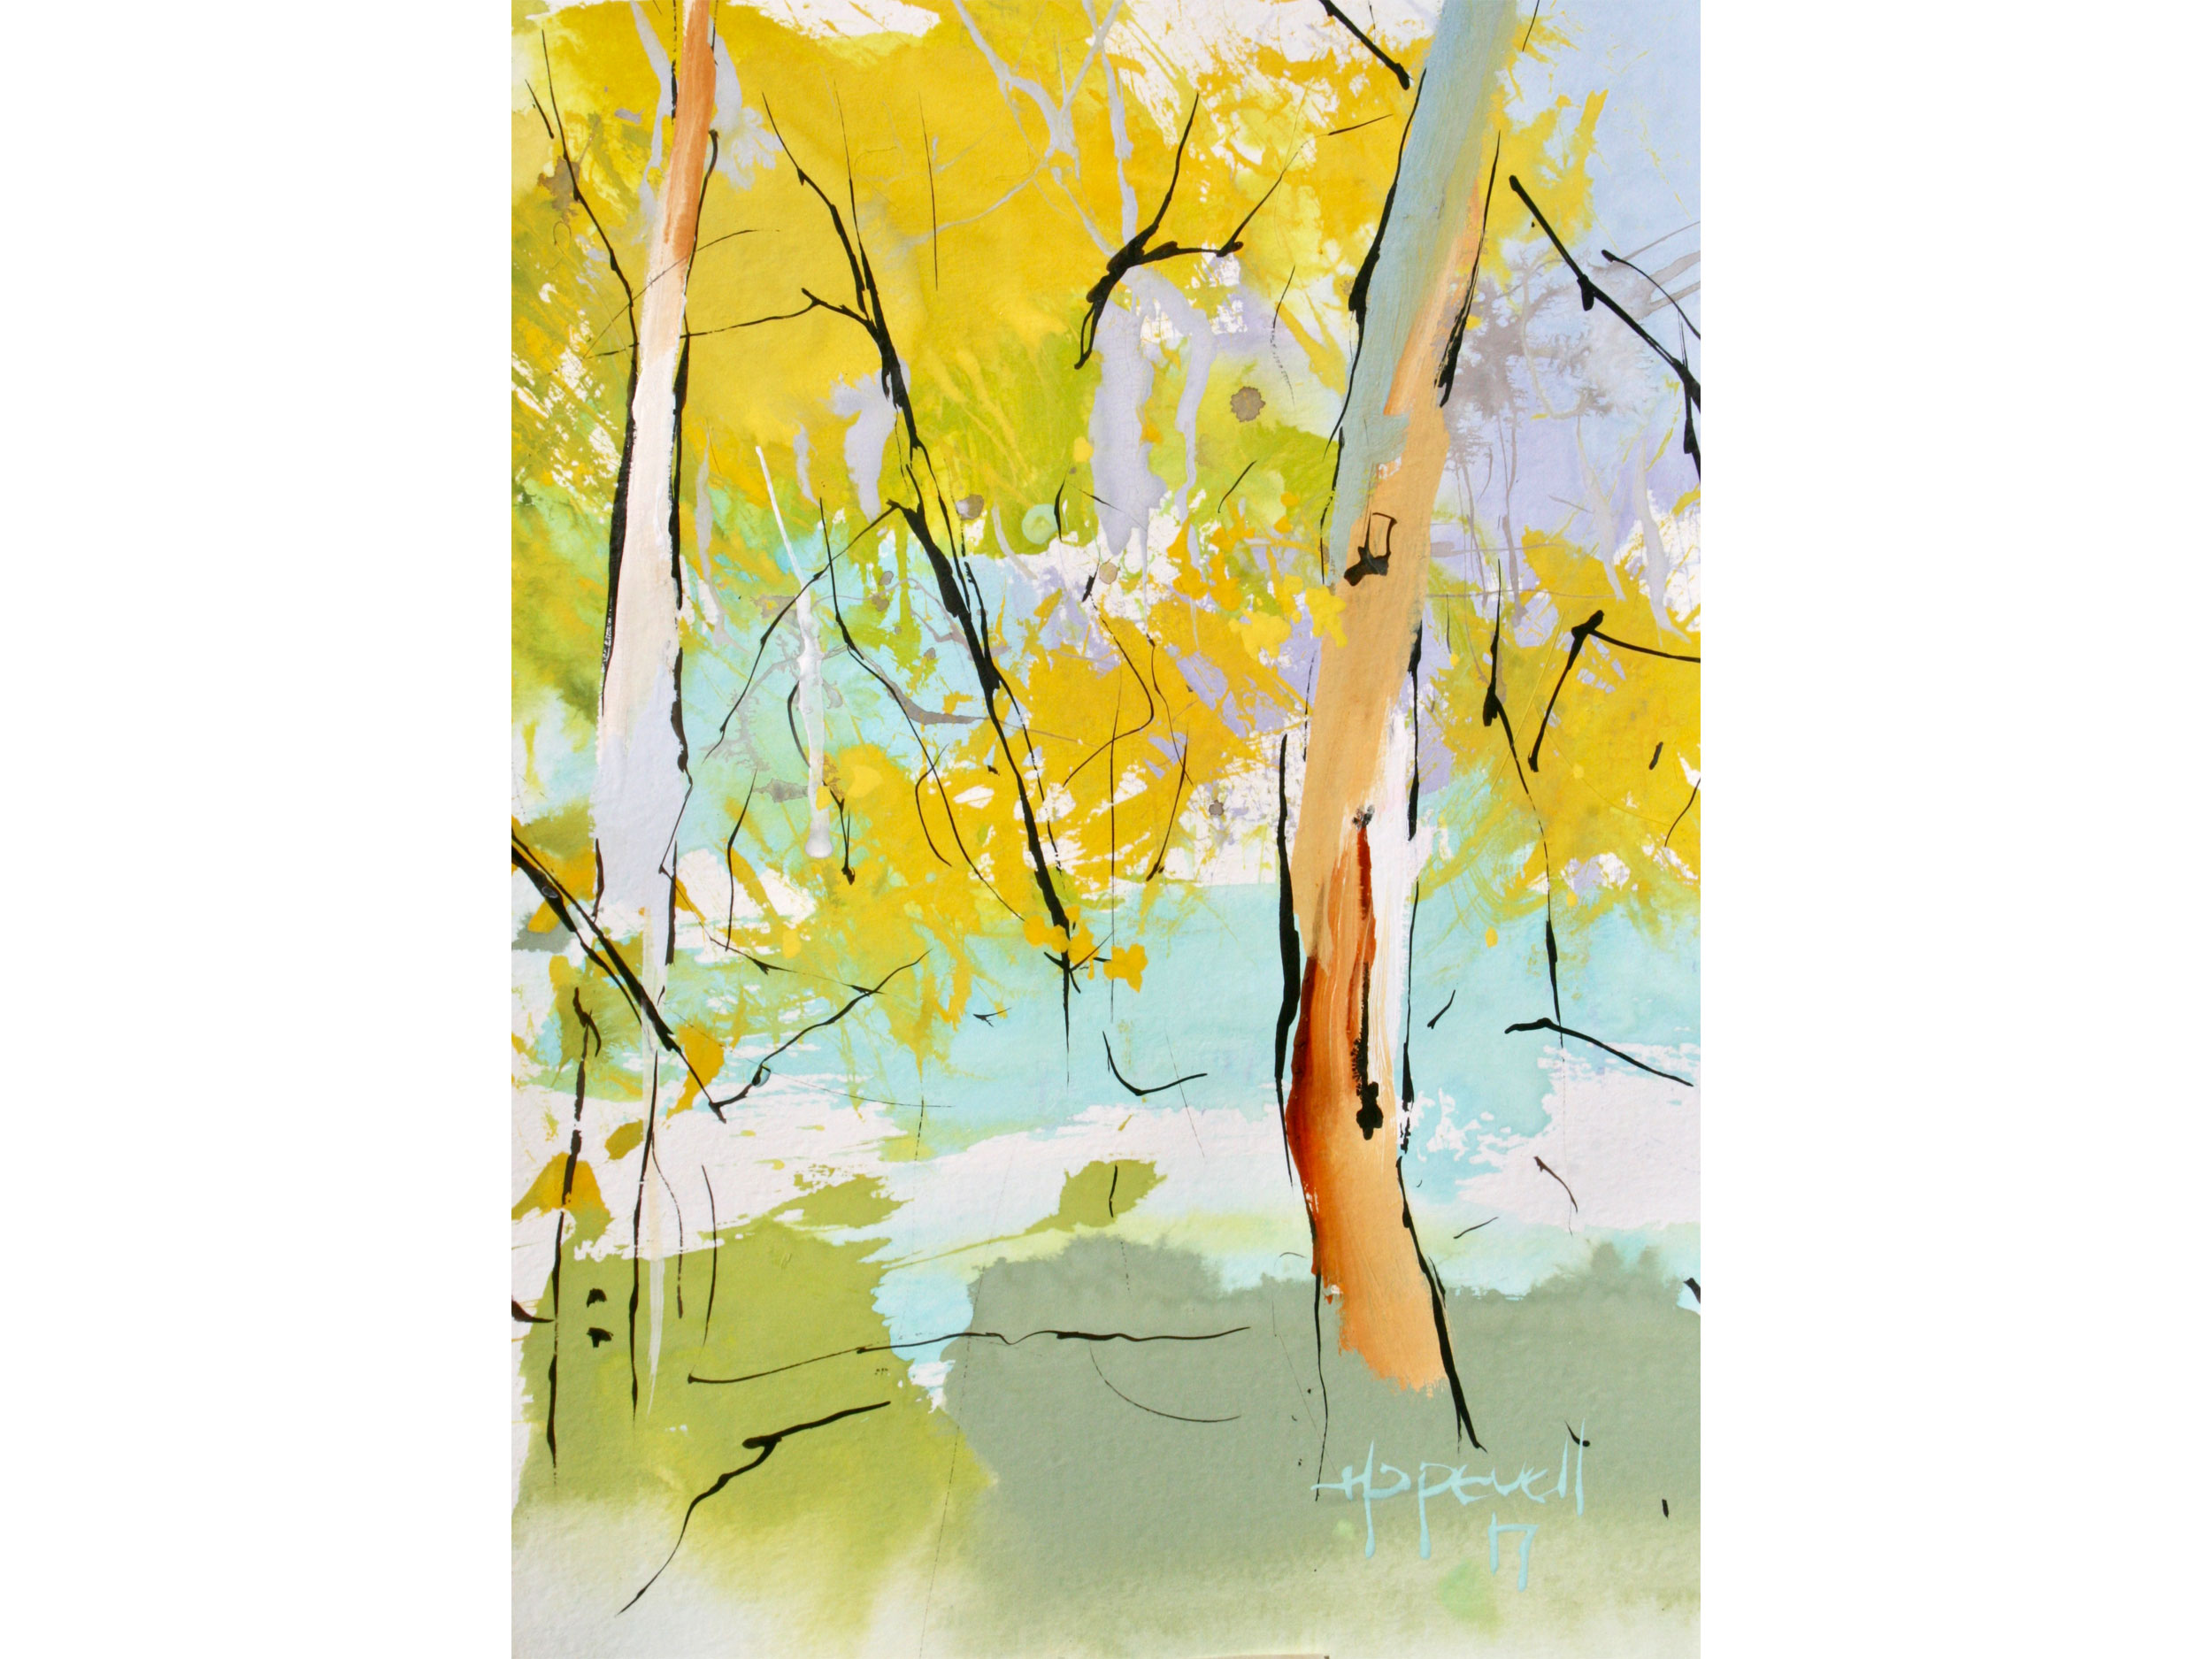 Jennifer Hopewell, Forest, Donnelly River resize 5